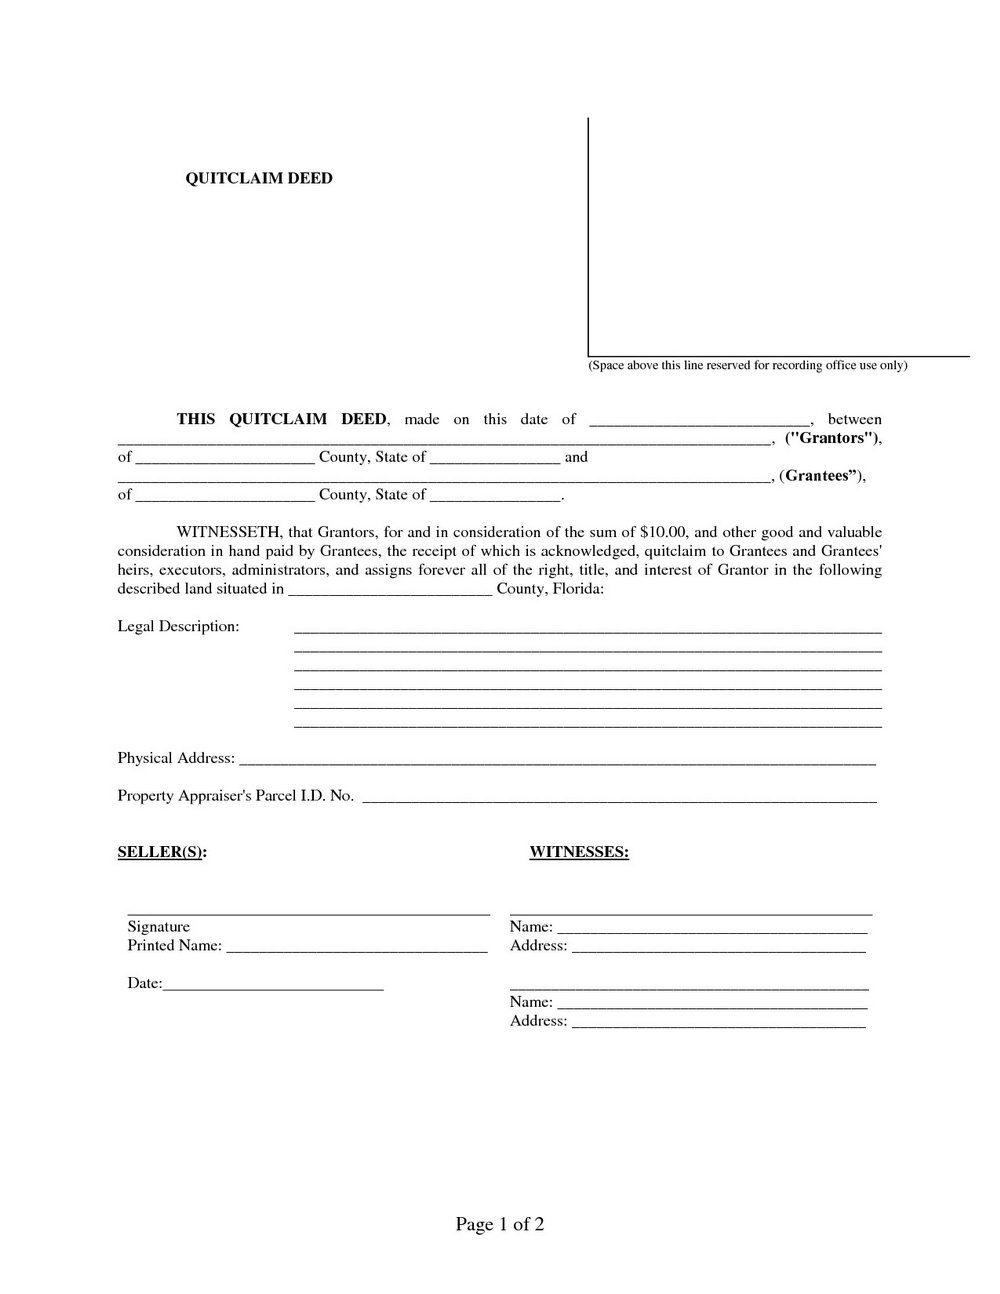 Quit Claim Deed Florida Form Free Download